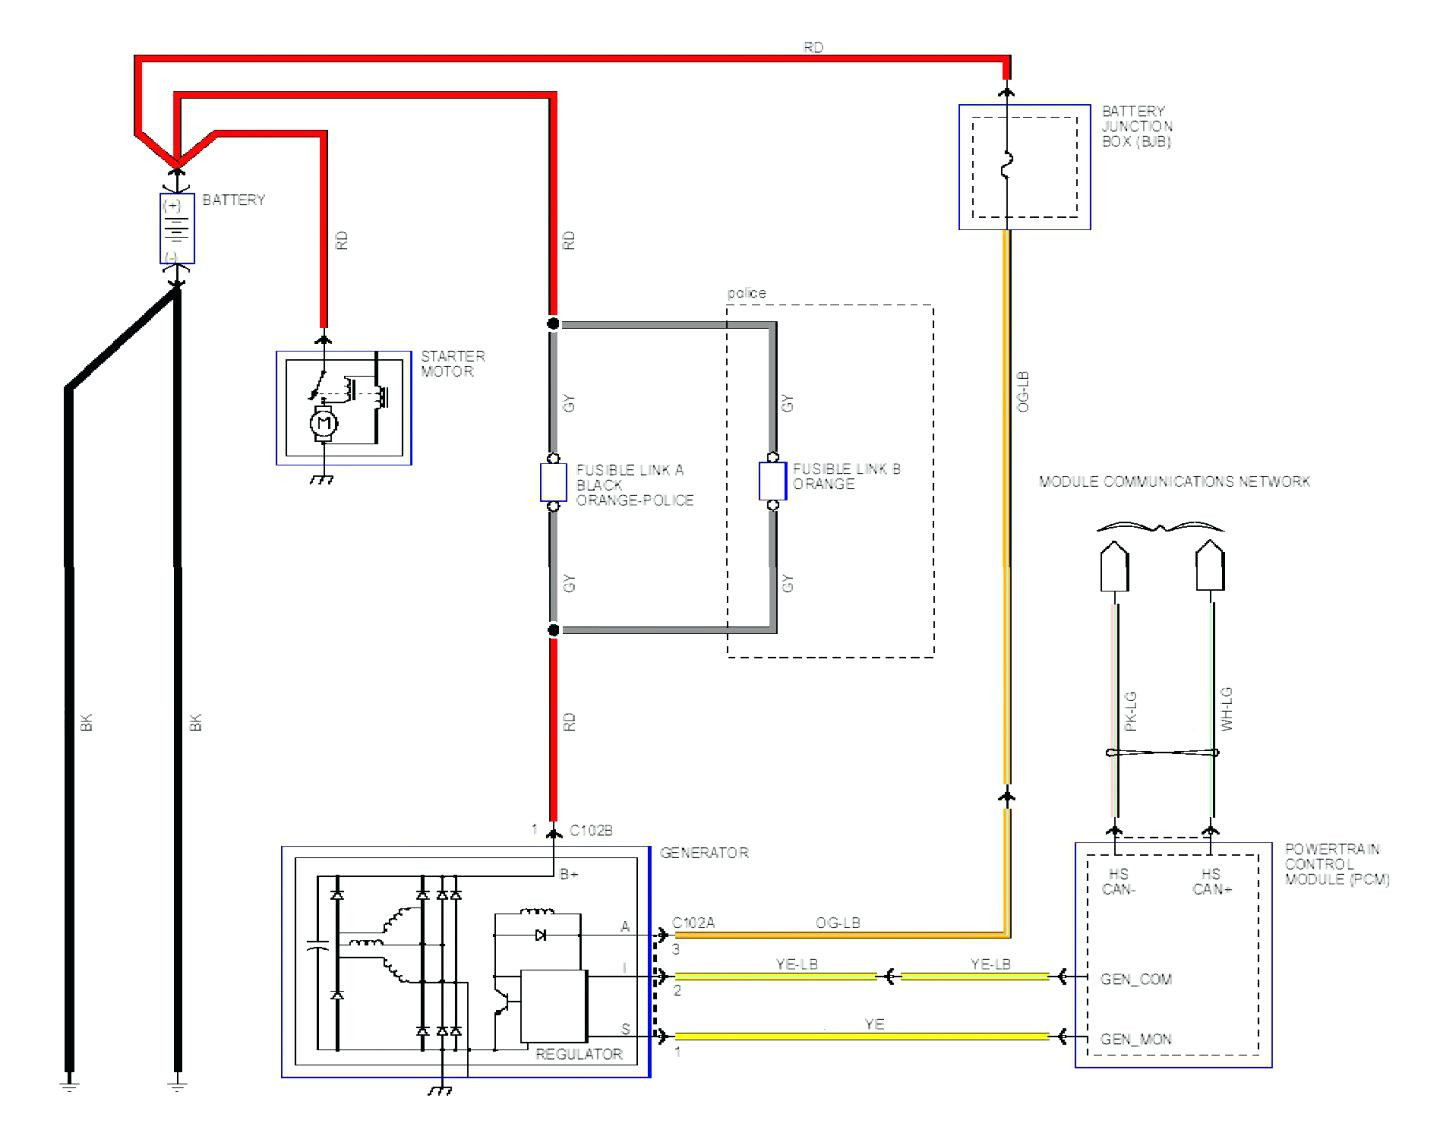 22Si Wiring Diagram | Wiring Library - Delco Remy Alternator Wiring Diagram